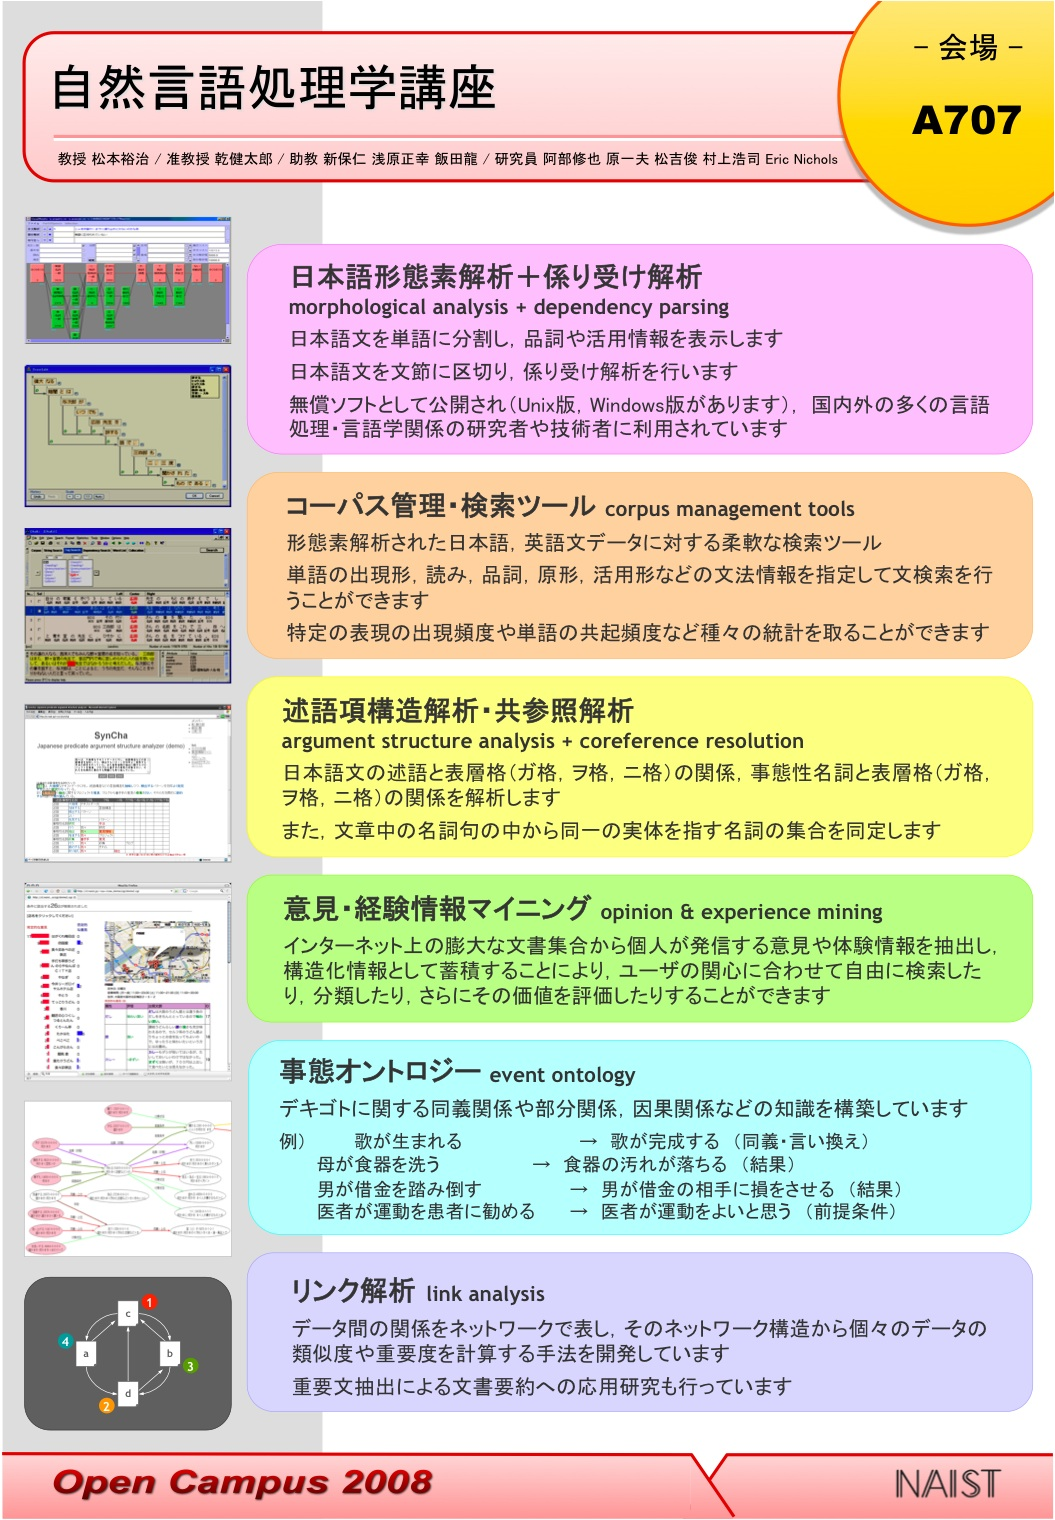 2008-05-24 CL Lab Open Campus Poster.jpg